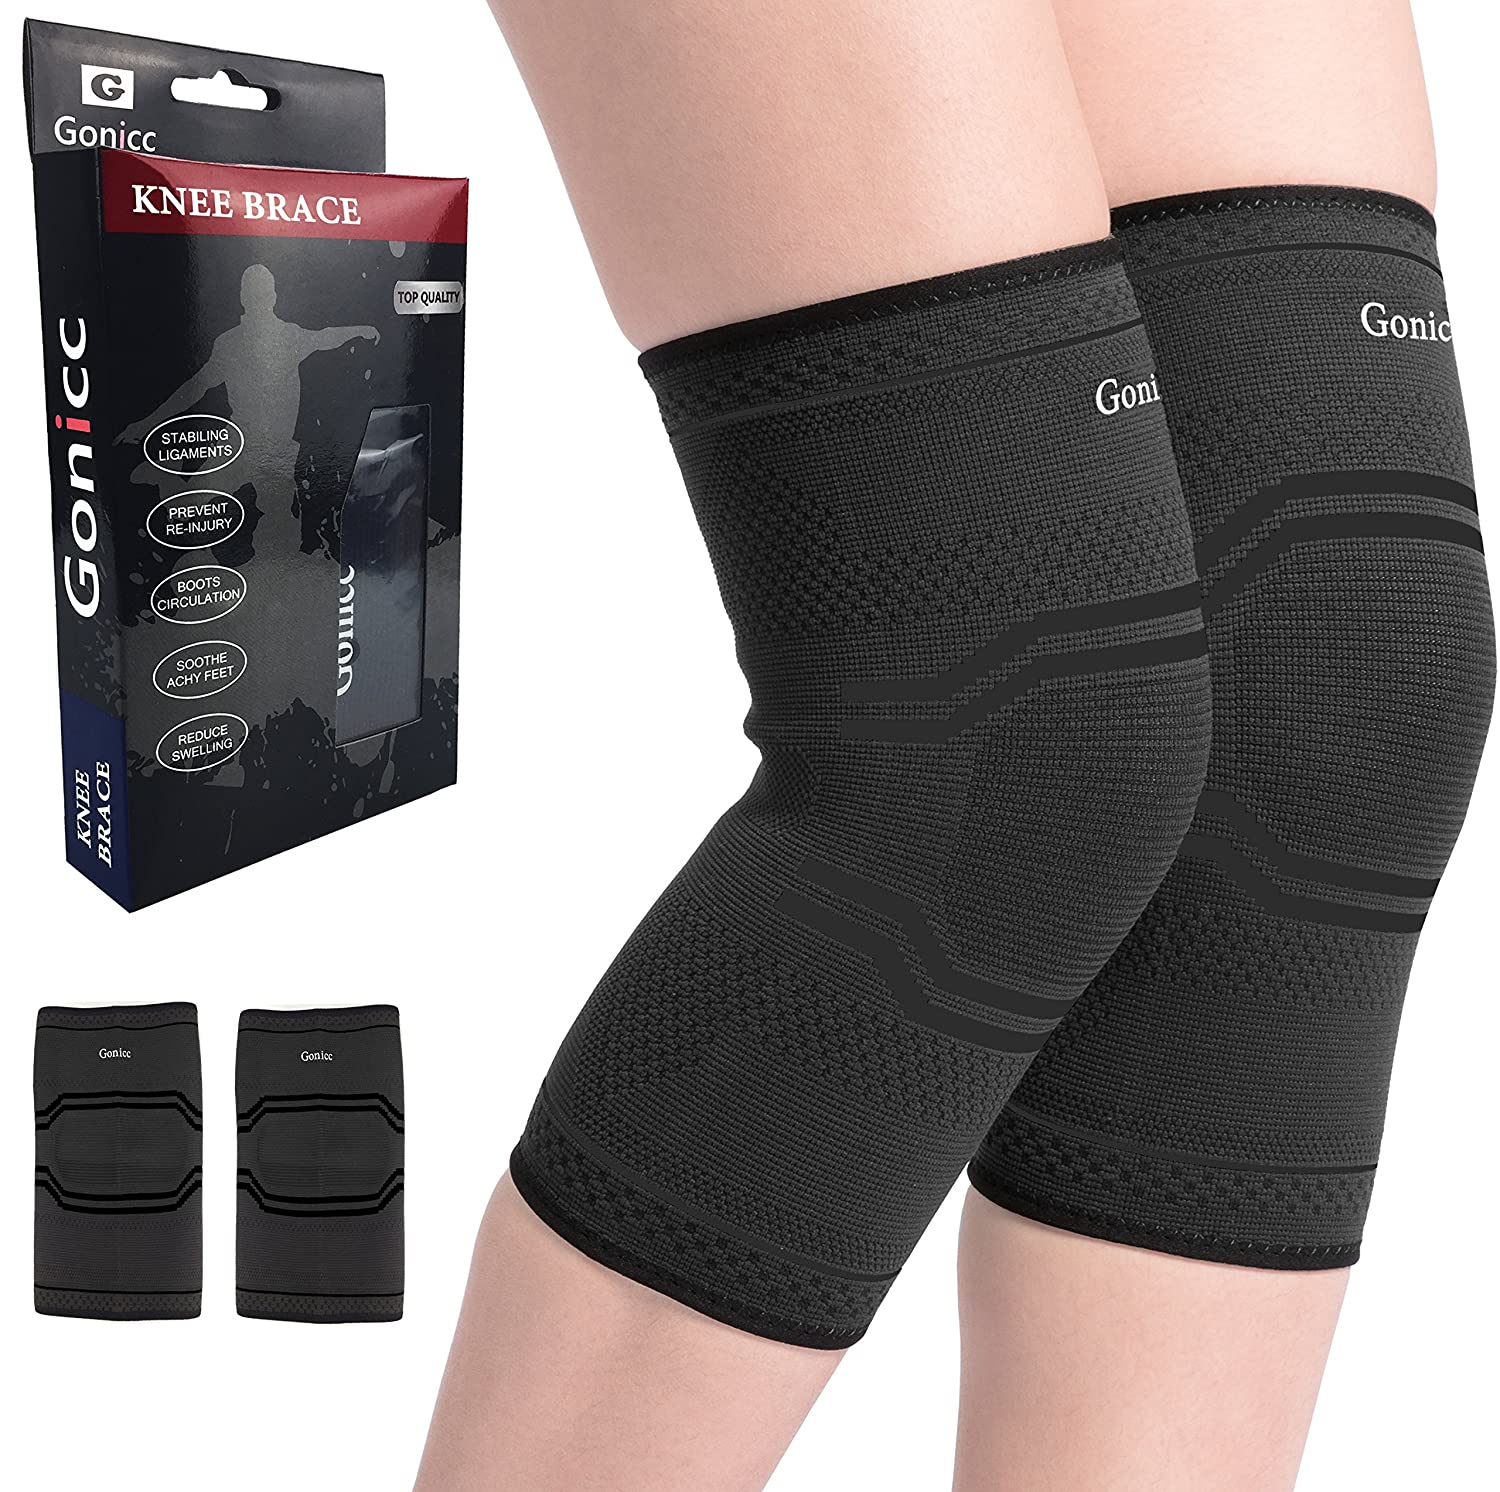 gonicc Professional Foot Sleeve Pair(2 Pcs) Compression Wrap Support, Breathable, Stabiling Ligaments, Prevent Re-Injury, Boots Circulation, Soothe Achy Feet, Reduce Swelling, Ankle Brace